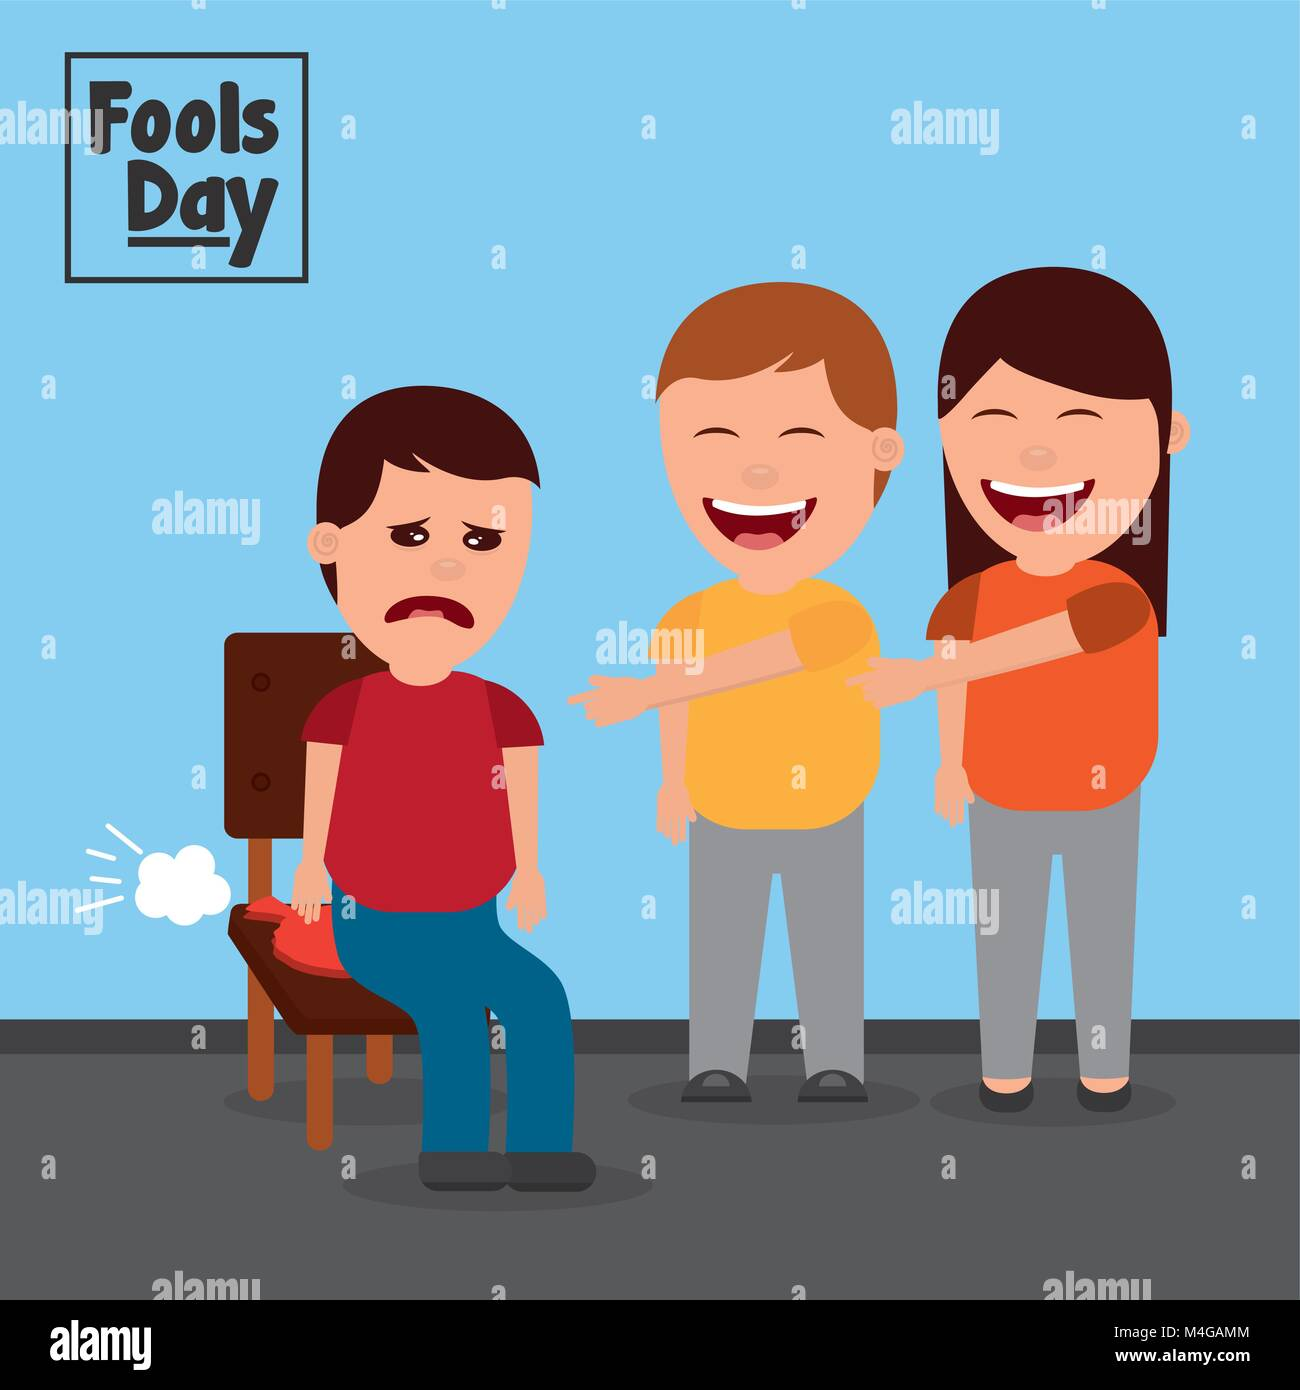 man and woman make joke a friend with cushion fools day - Stock Image